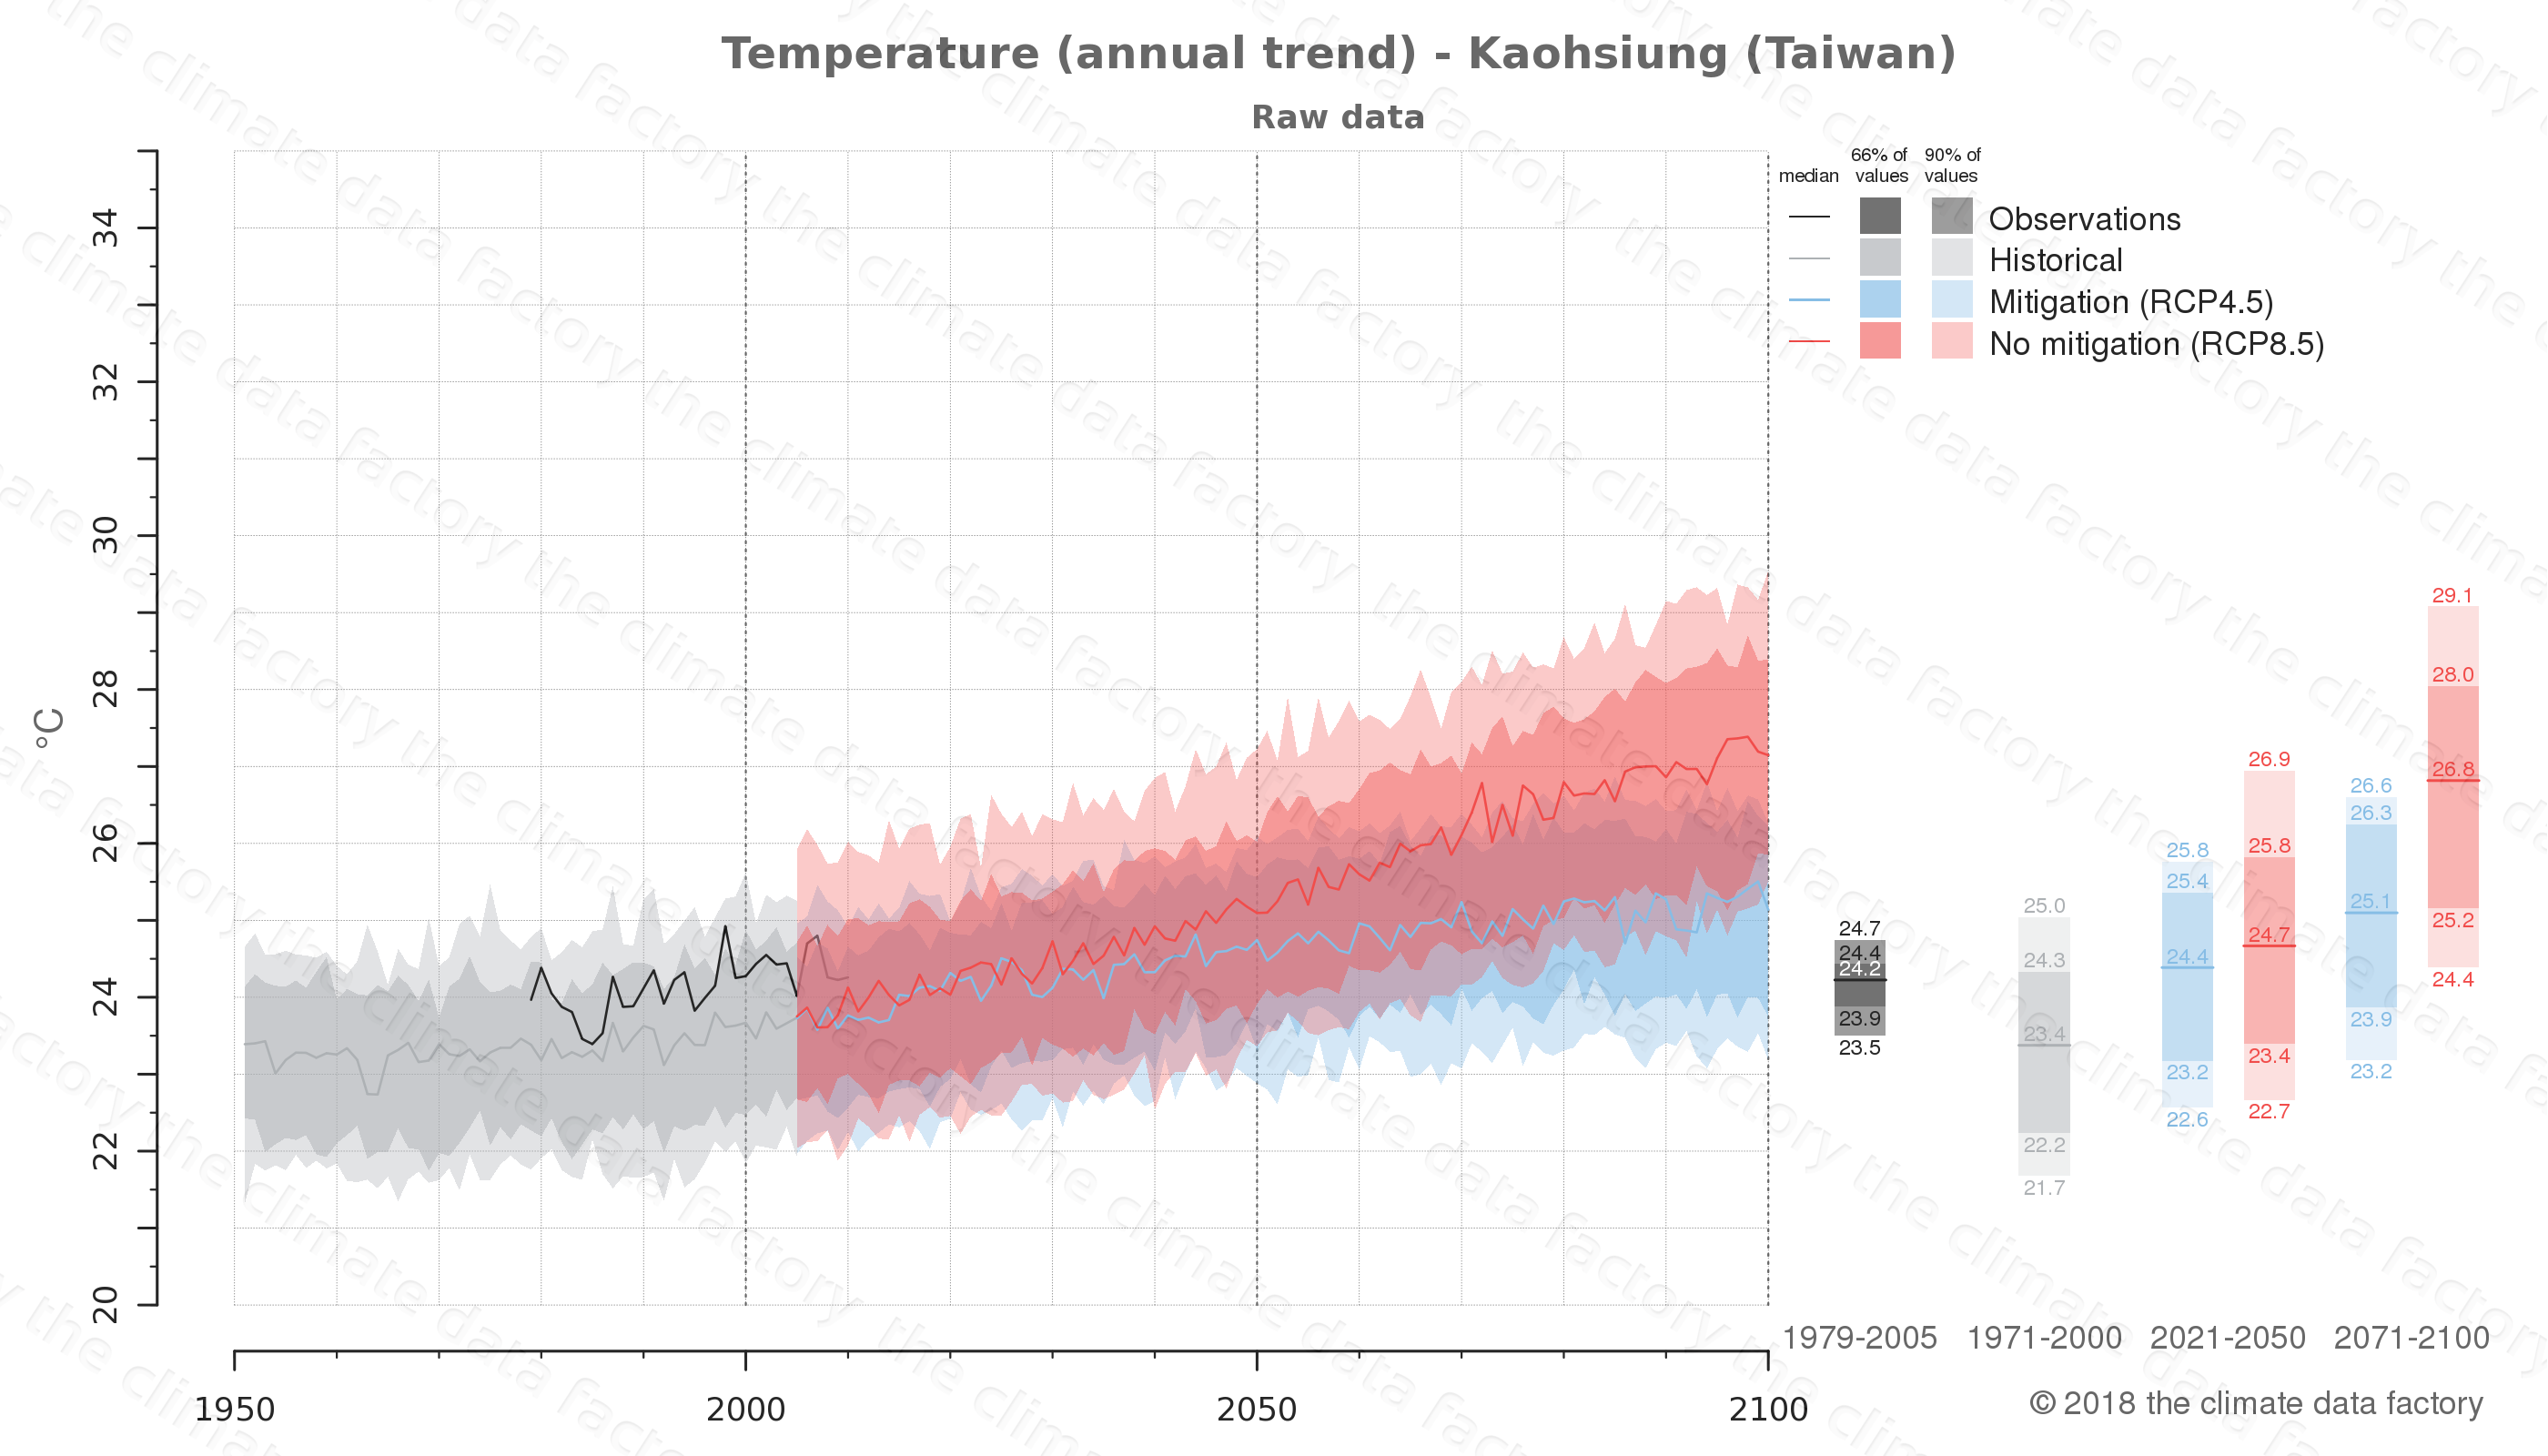 climate change data policy adaptation climate graph city data temperature kaohsiung taiwan